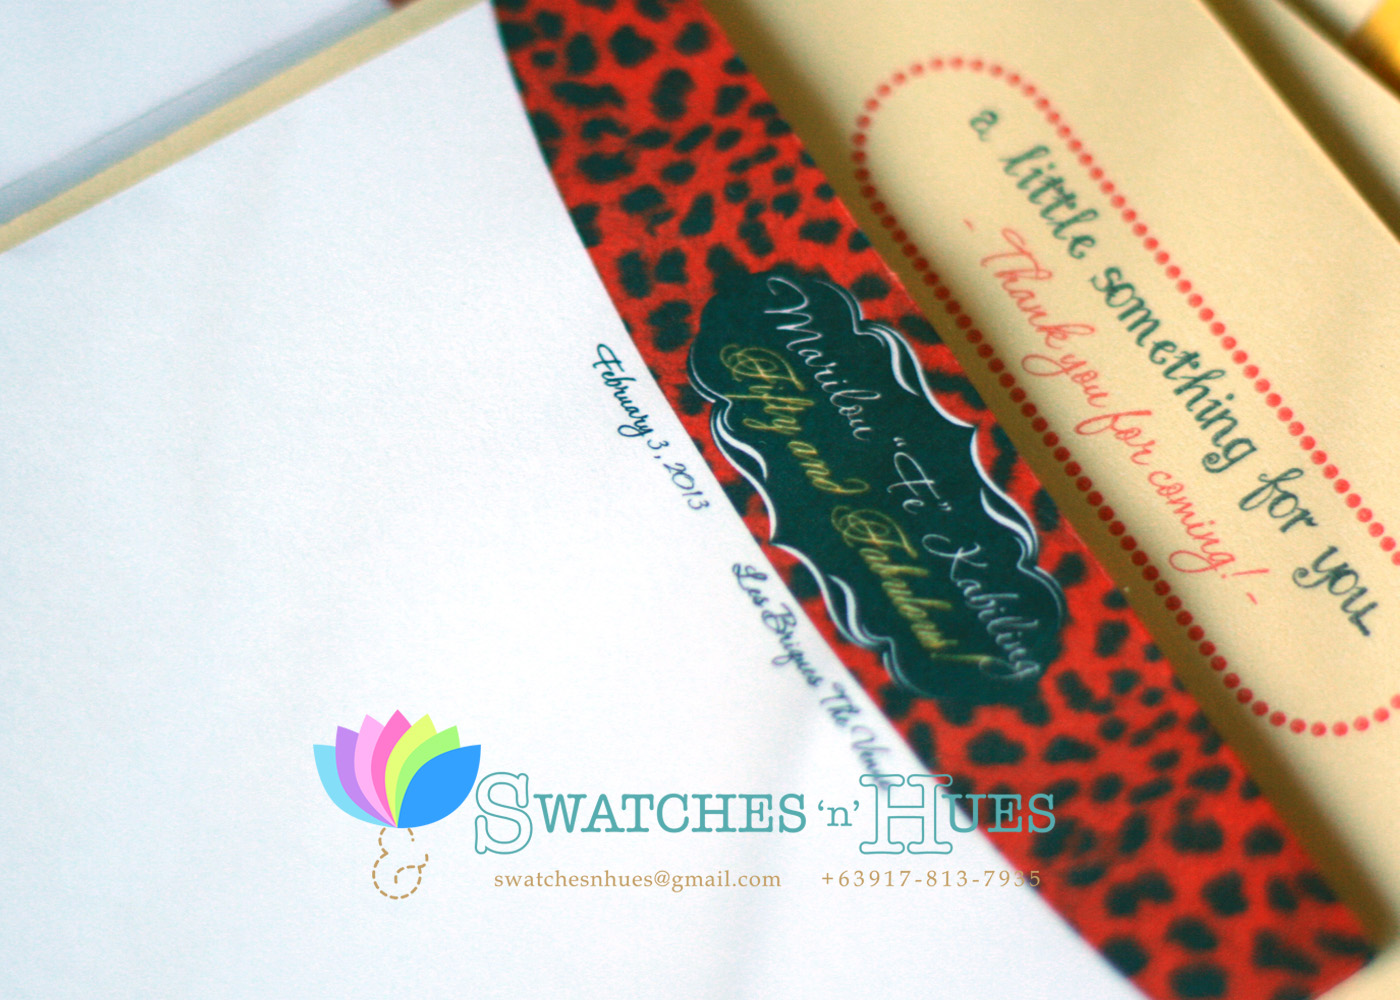 swatches hues handmade with tlc personalized notepads